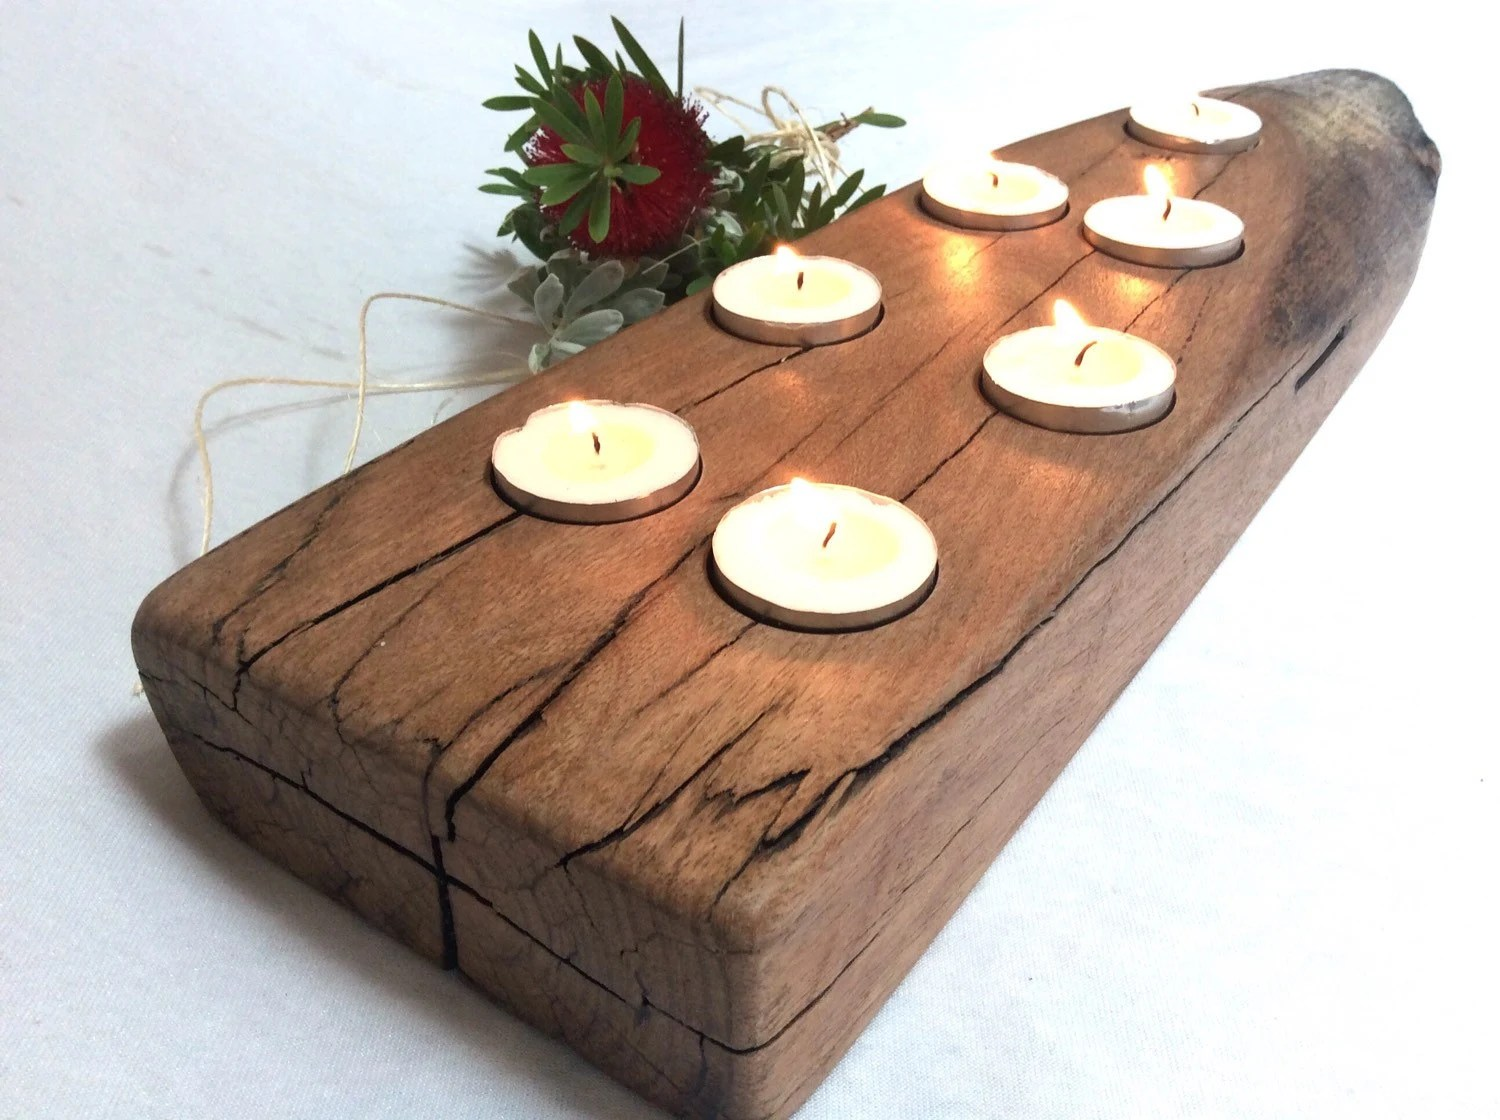 Wooden Candle Holders Australia Christmas Candles Centrepiece Candles Rustic Wooden Candle